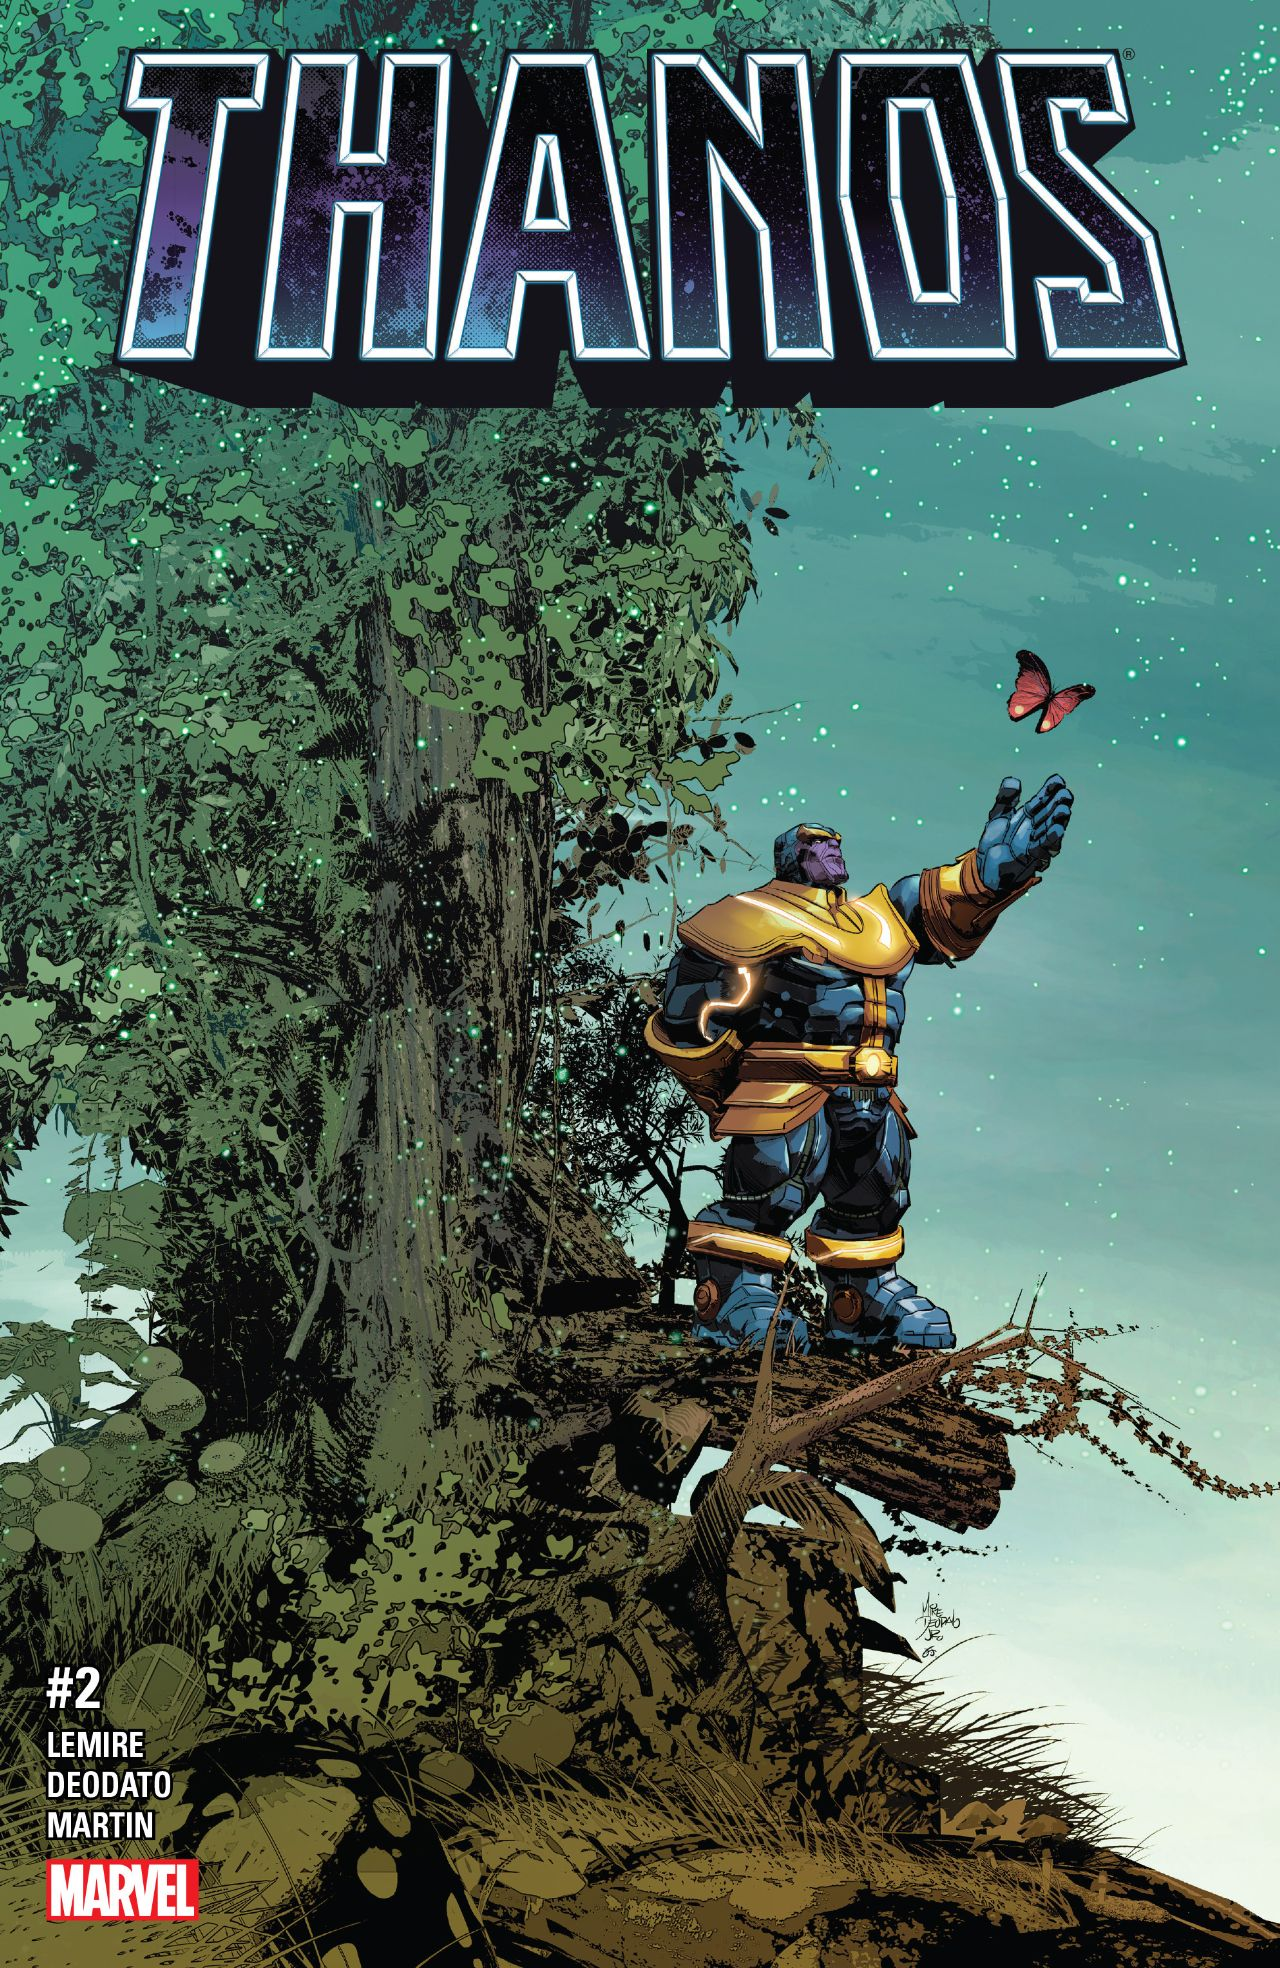 Thanos #2 Review: The Cosmic Grandeur of Jim Starlin Revisited!